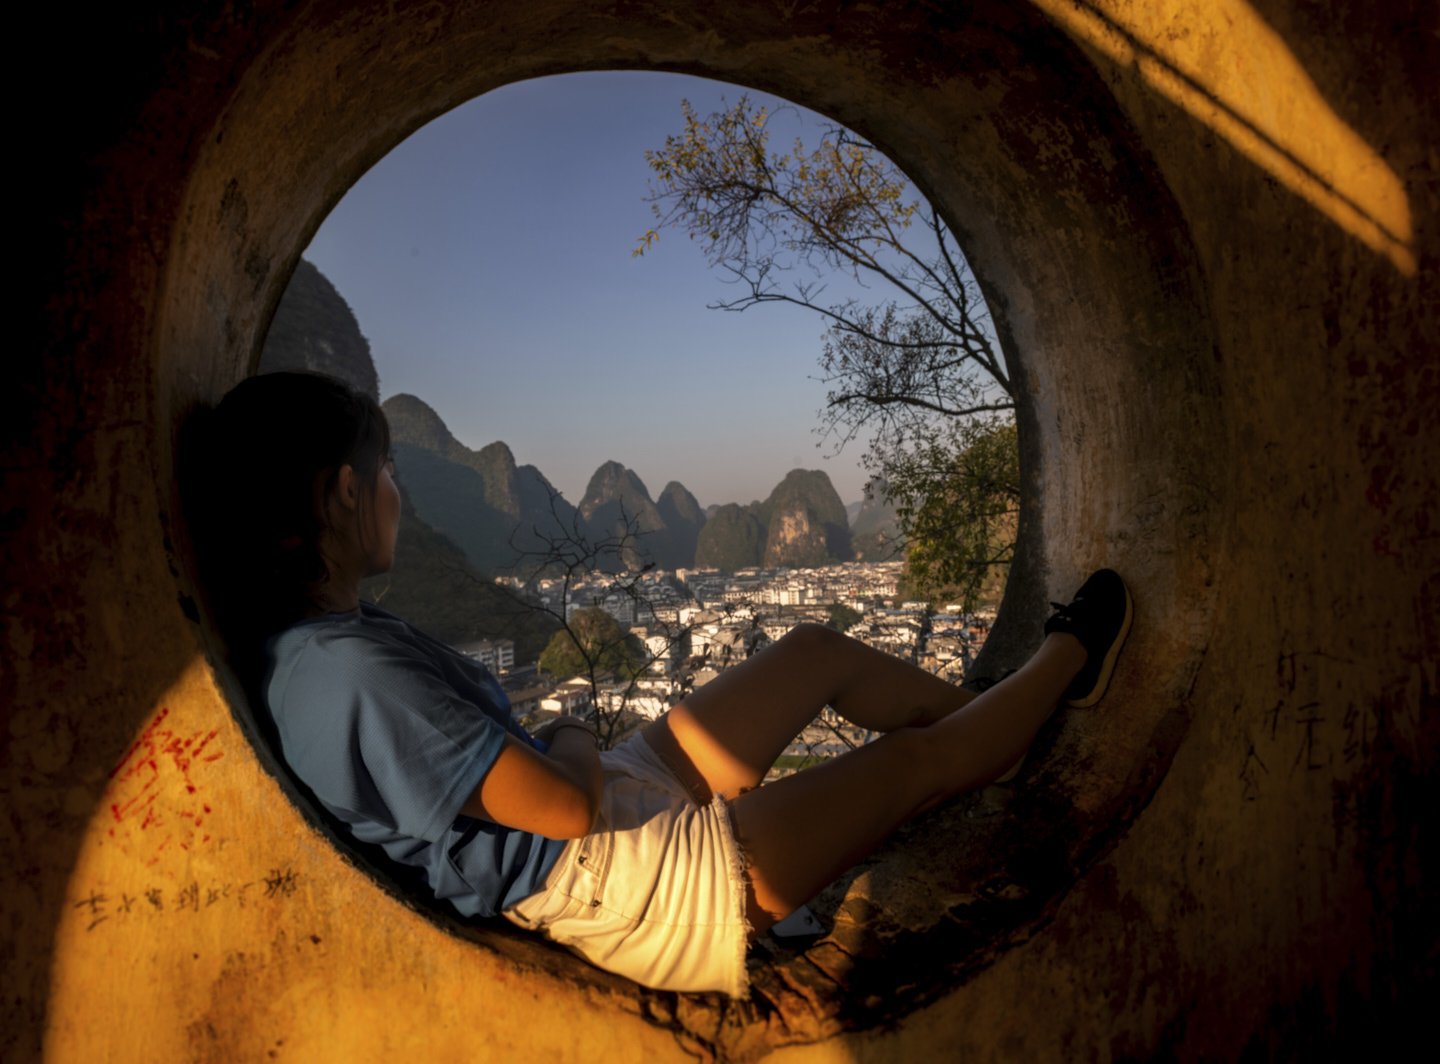 Ella sits in one of the windows at Yangshuo Park's pagoda